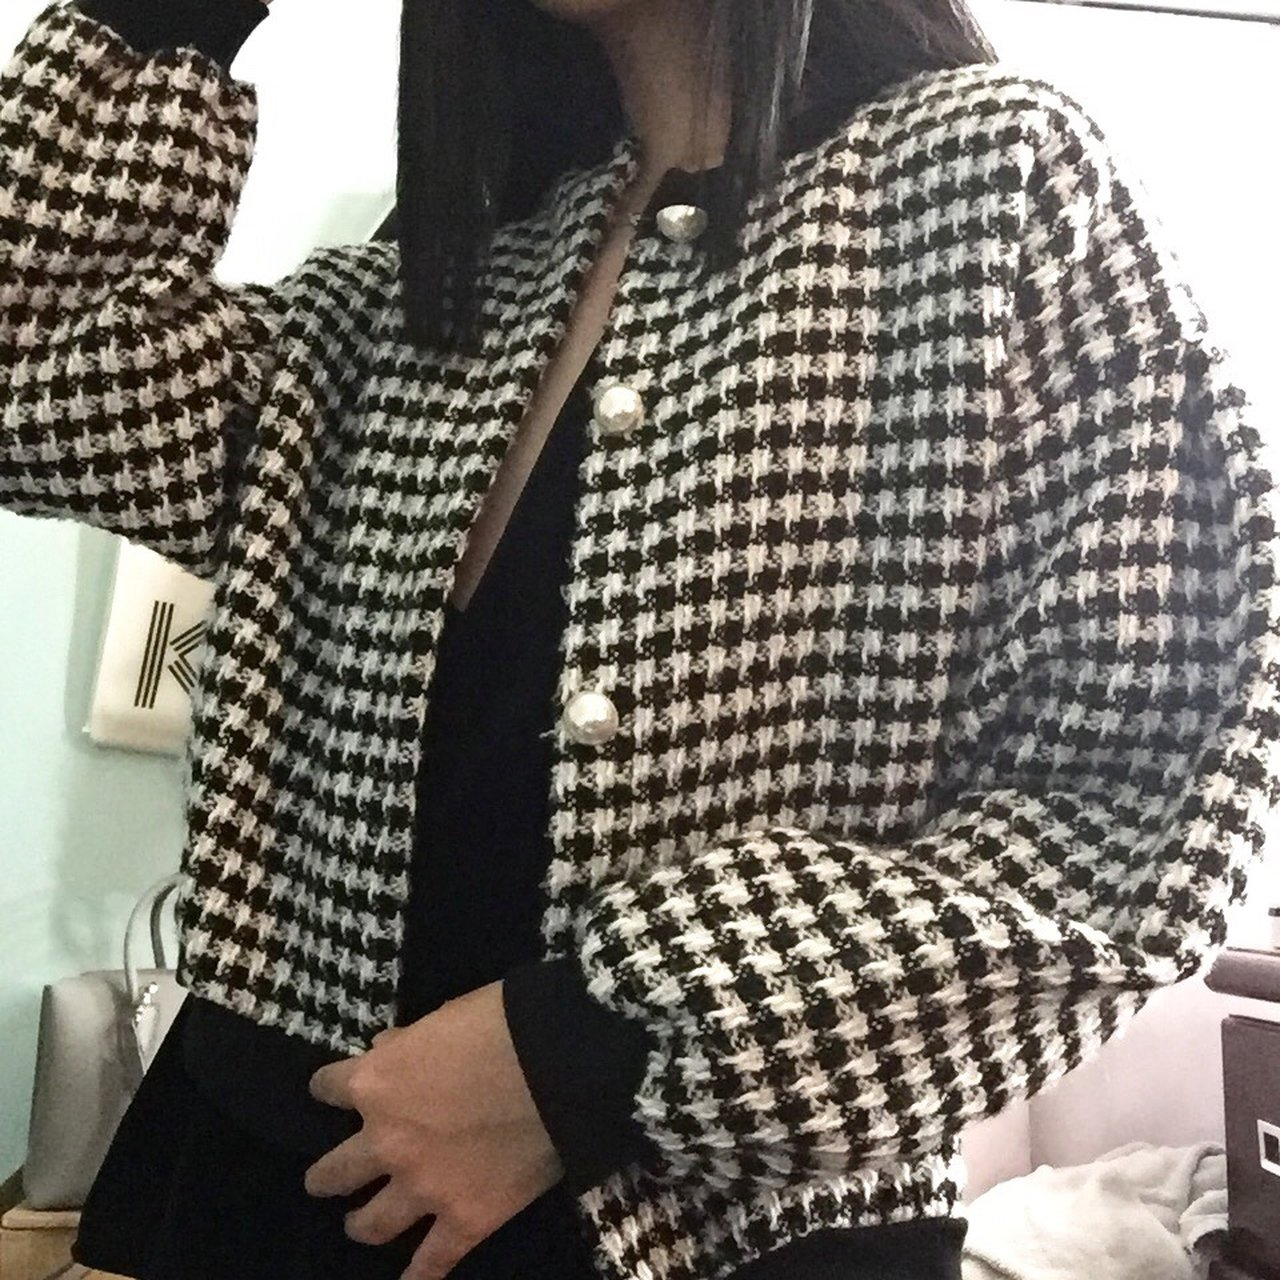 f3fe5b6a2 Black and white checkered houndstooth tweed knit jacket with - Depop